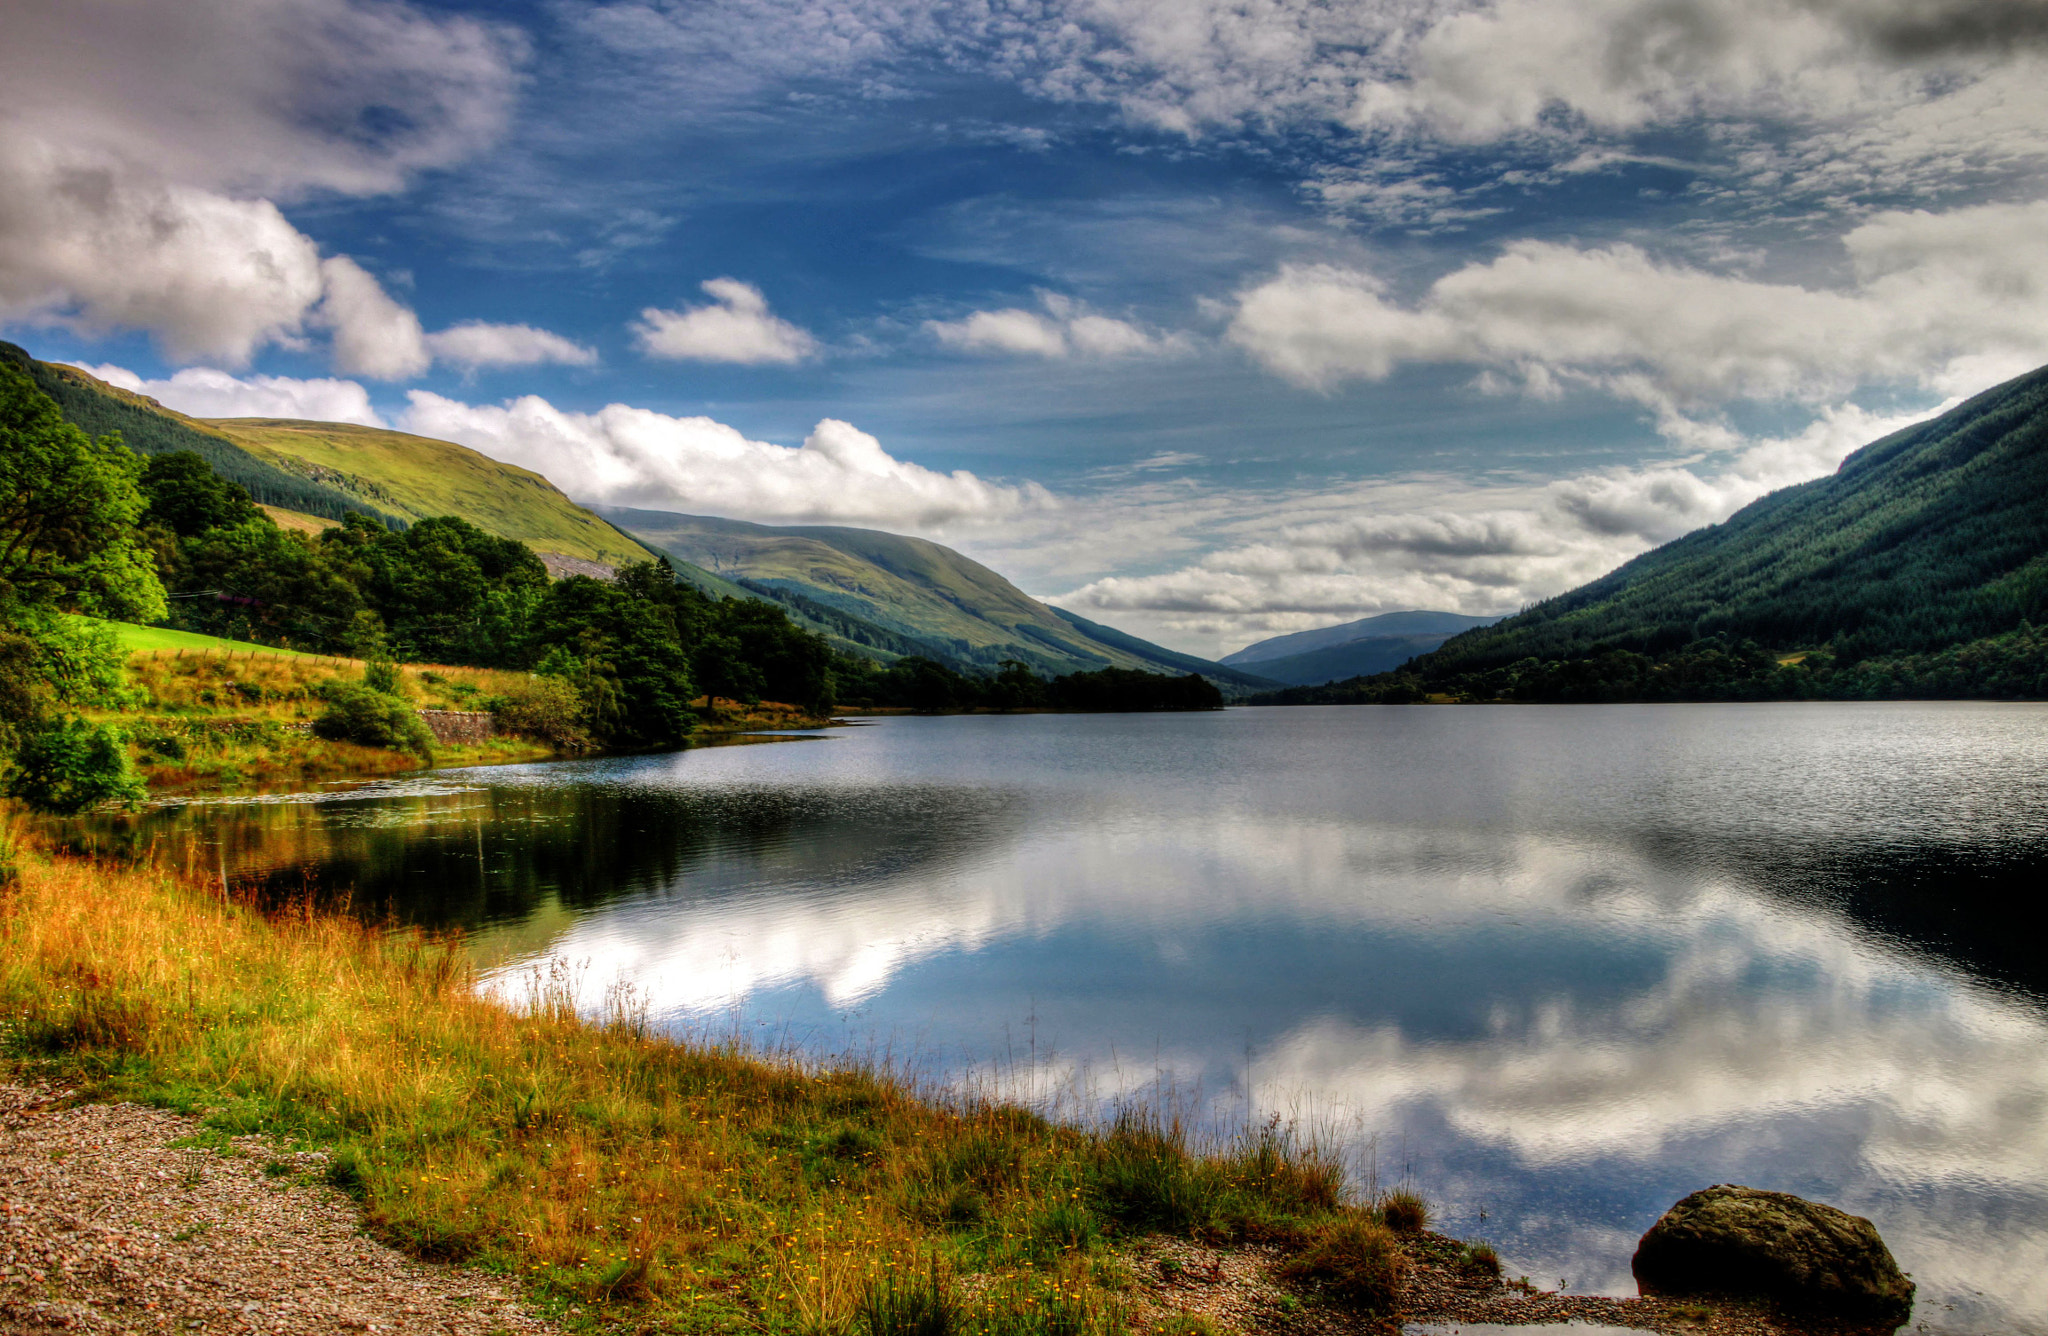 Photograph Loch voil by Hilda Murray on 500px